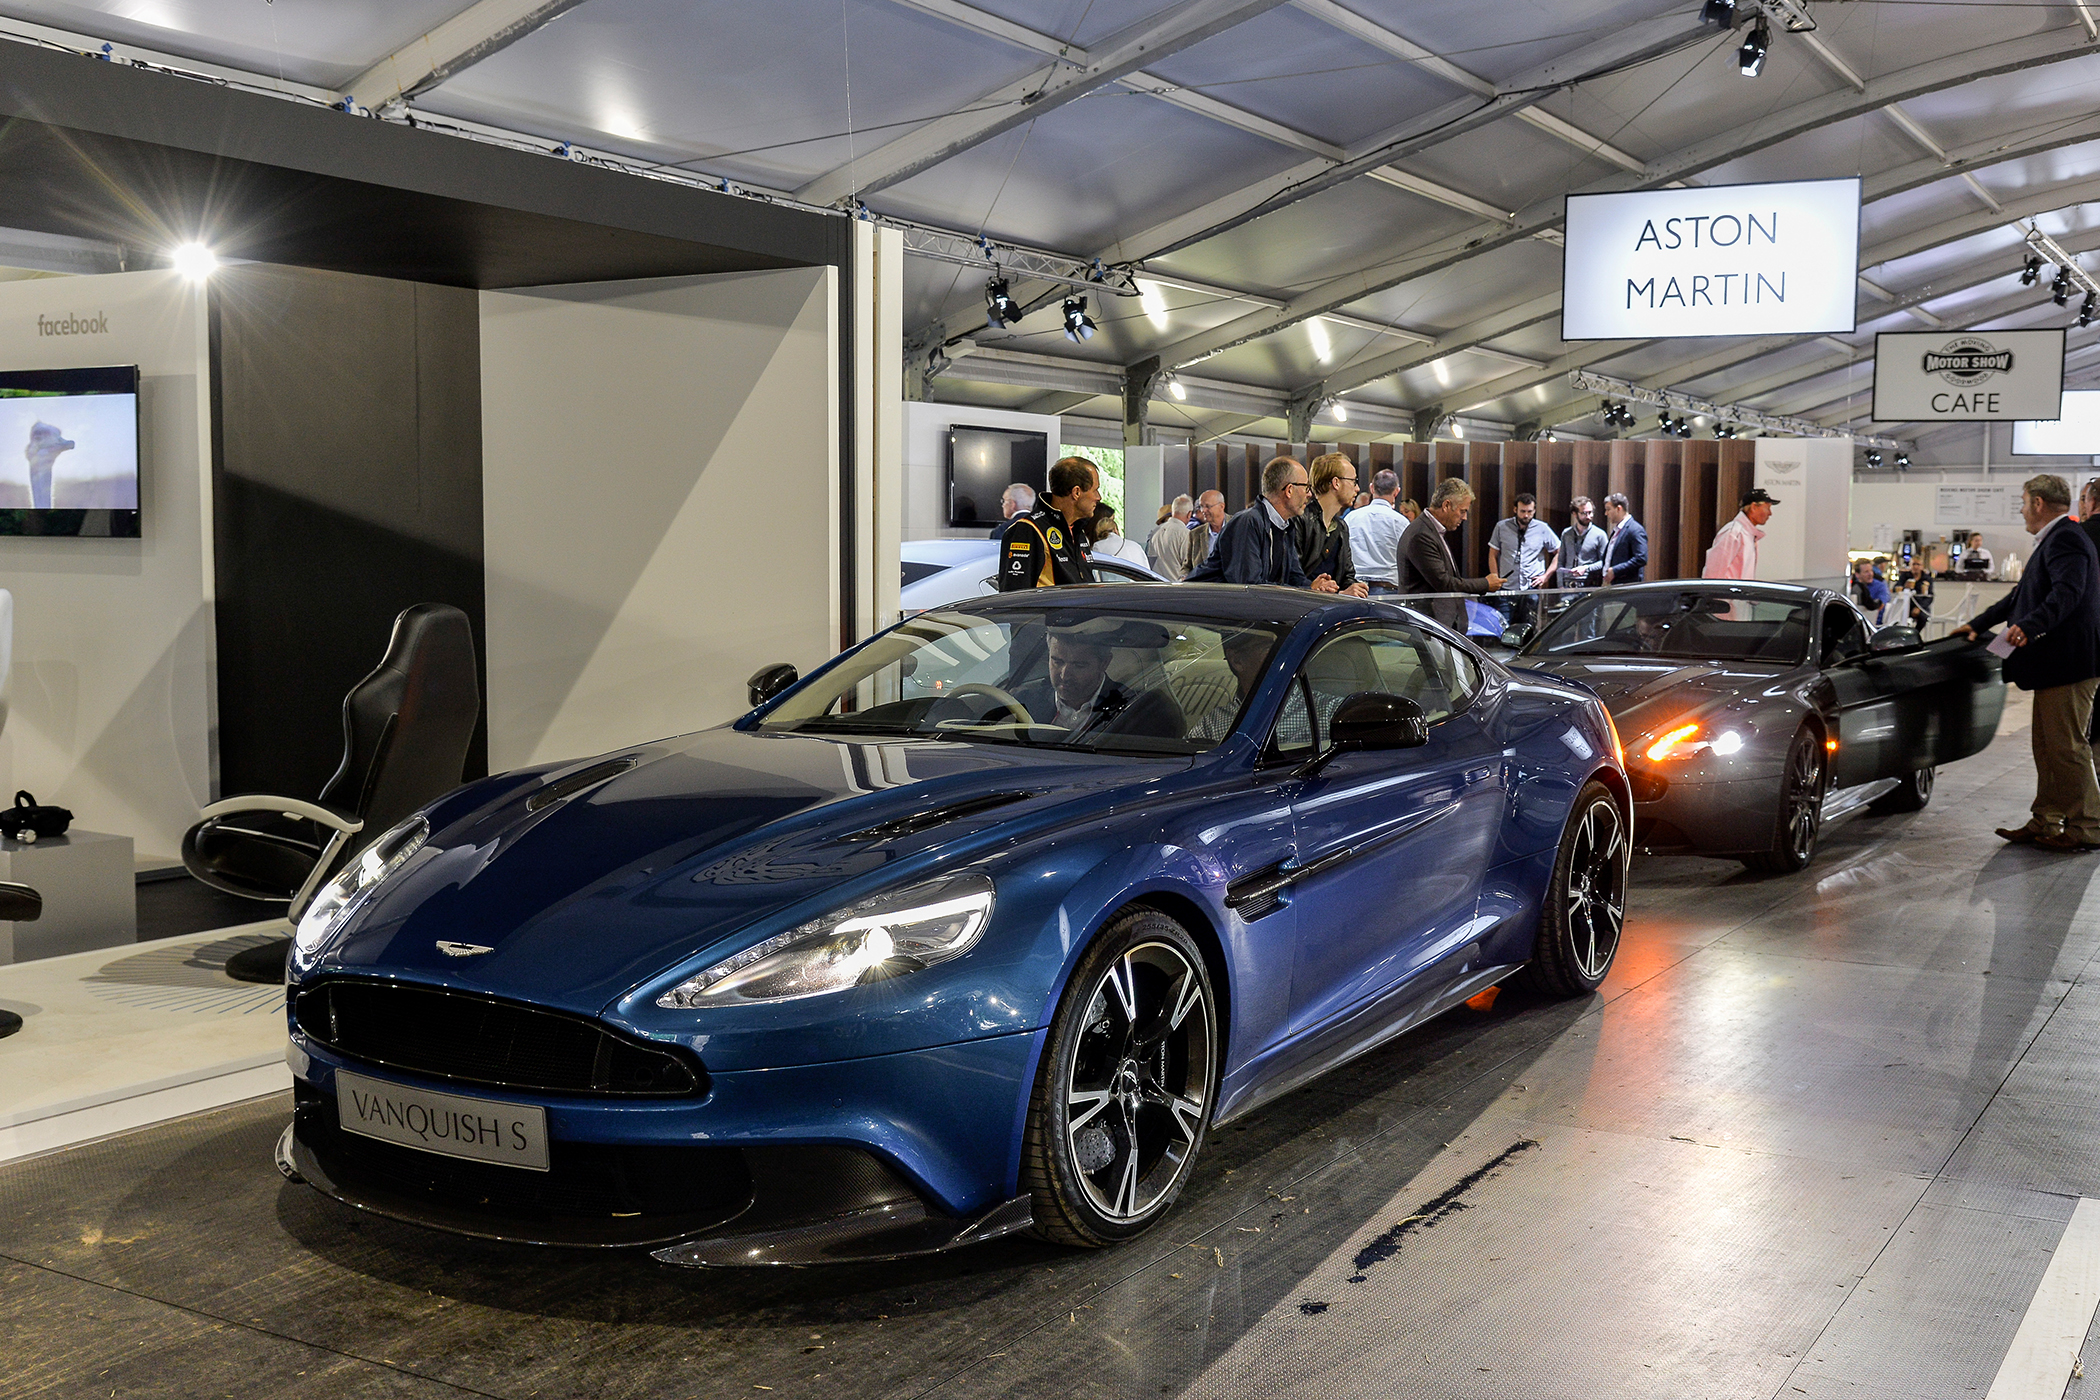 Blue Aston Martin model on display at Goodwood Festival of Speed 2017